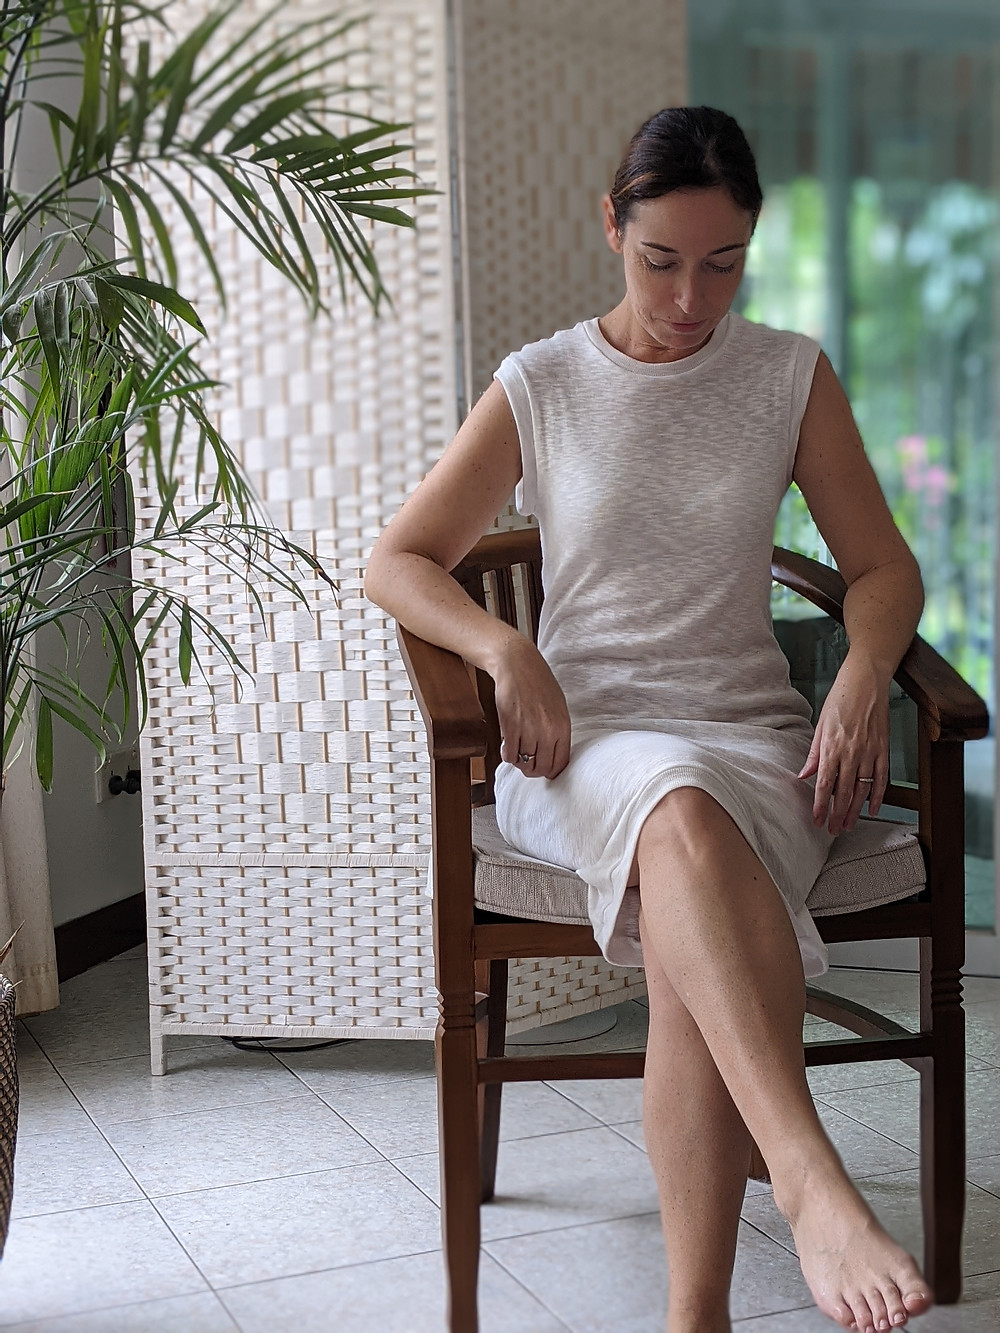 Eco friendly fashion for women who work from home